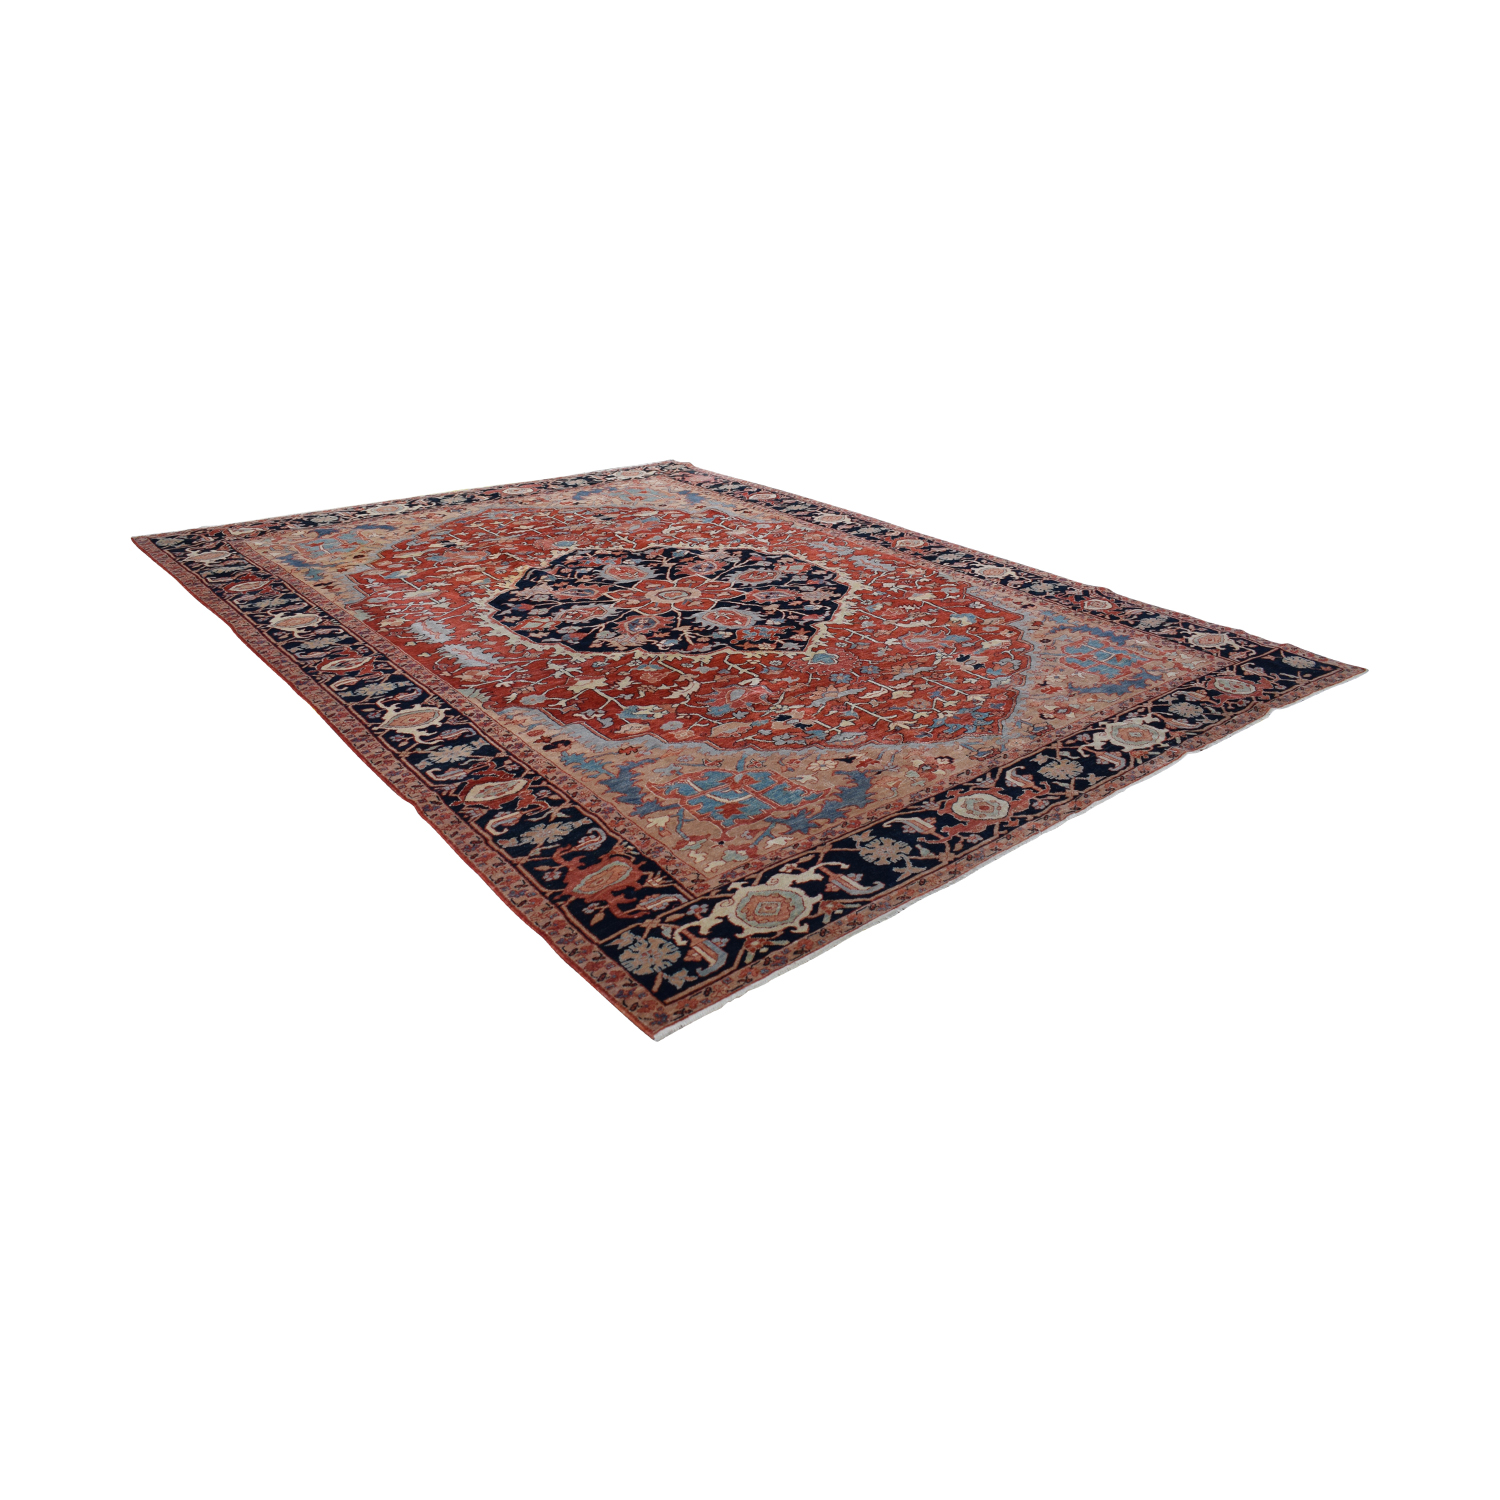 Woven Legends Woven Legends Large Area Rug price